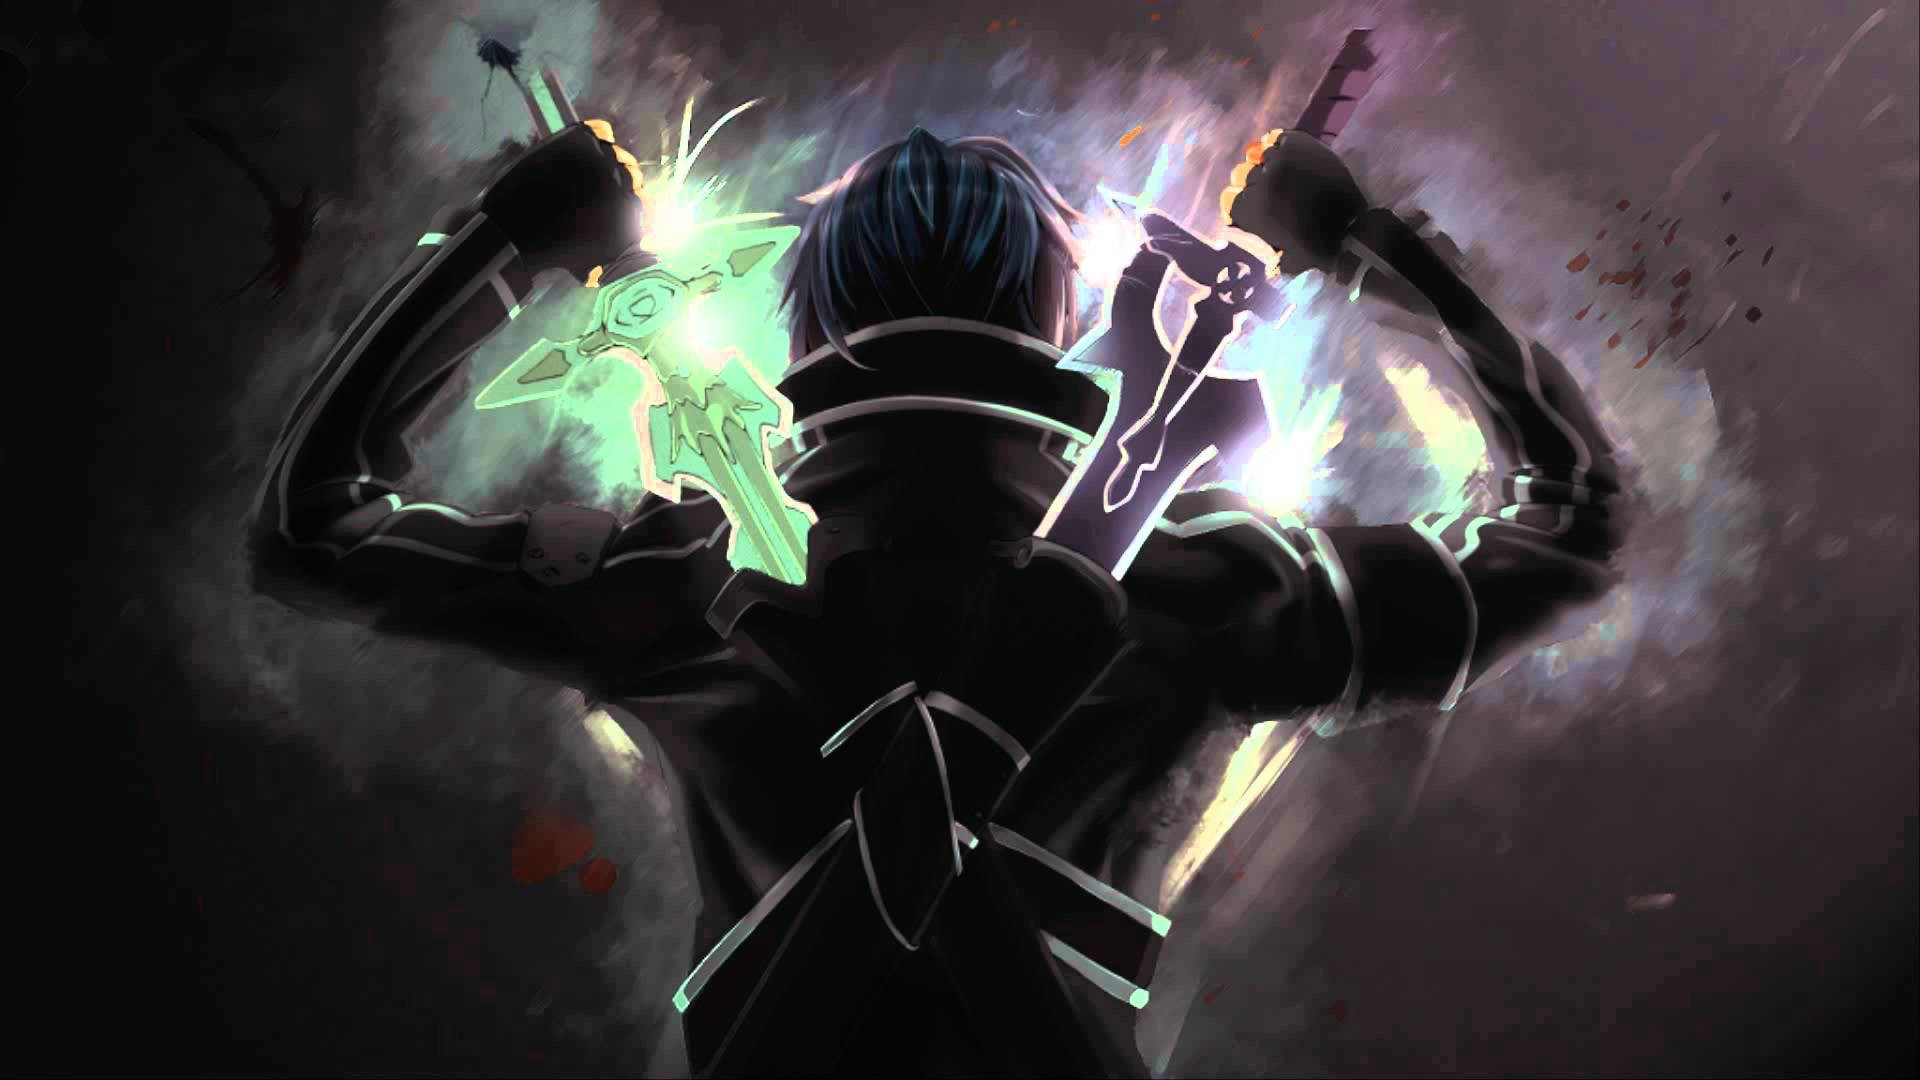 1920x1080 Anime Sword Art Online Wallpapers Desktop Phone Tablet